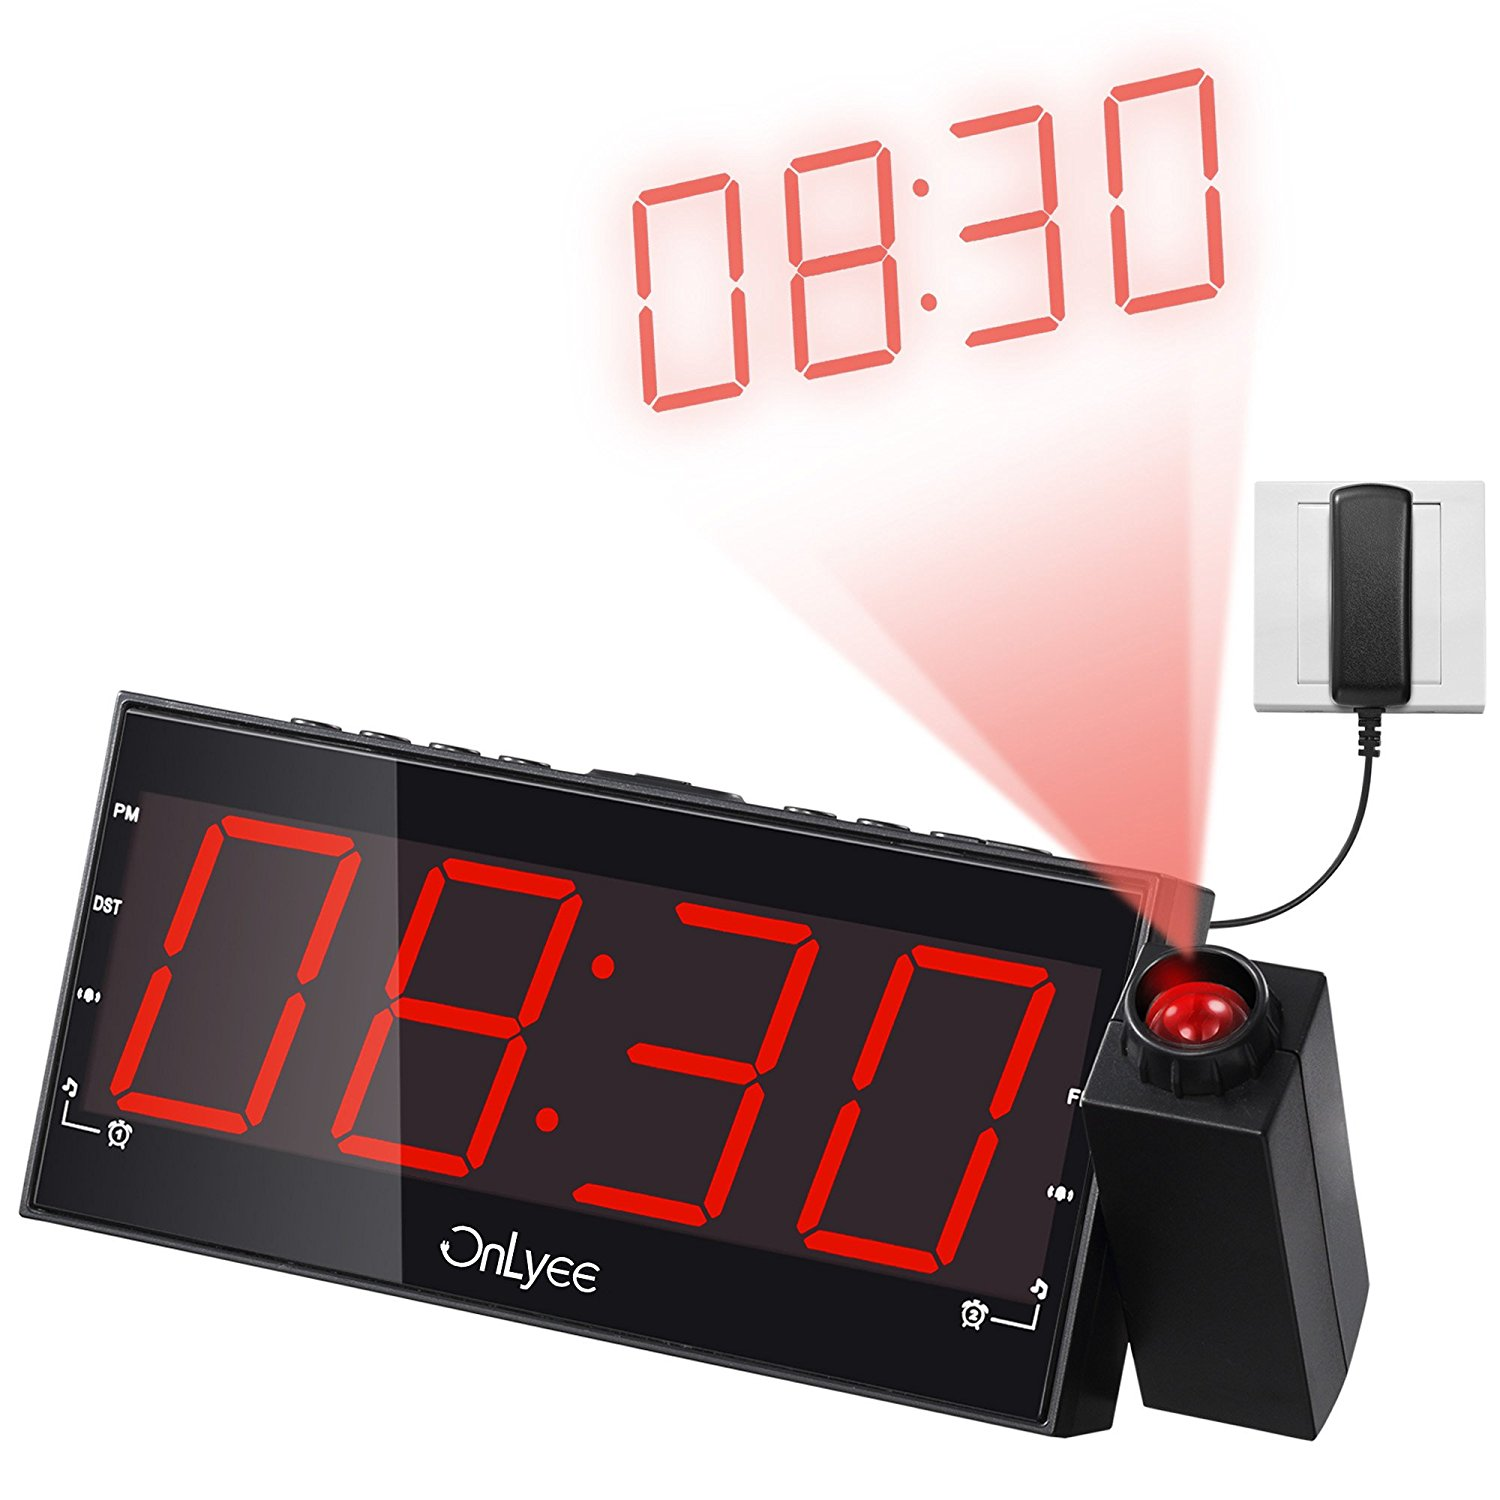 onlyee 1 8 led dimmable projection clock radio with am fm. Black Bedroom Furniture Sets. Home Design Ideas